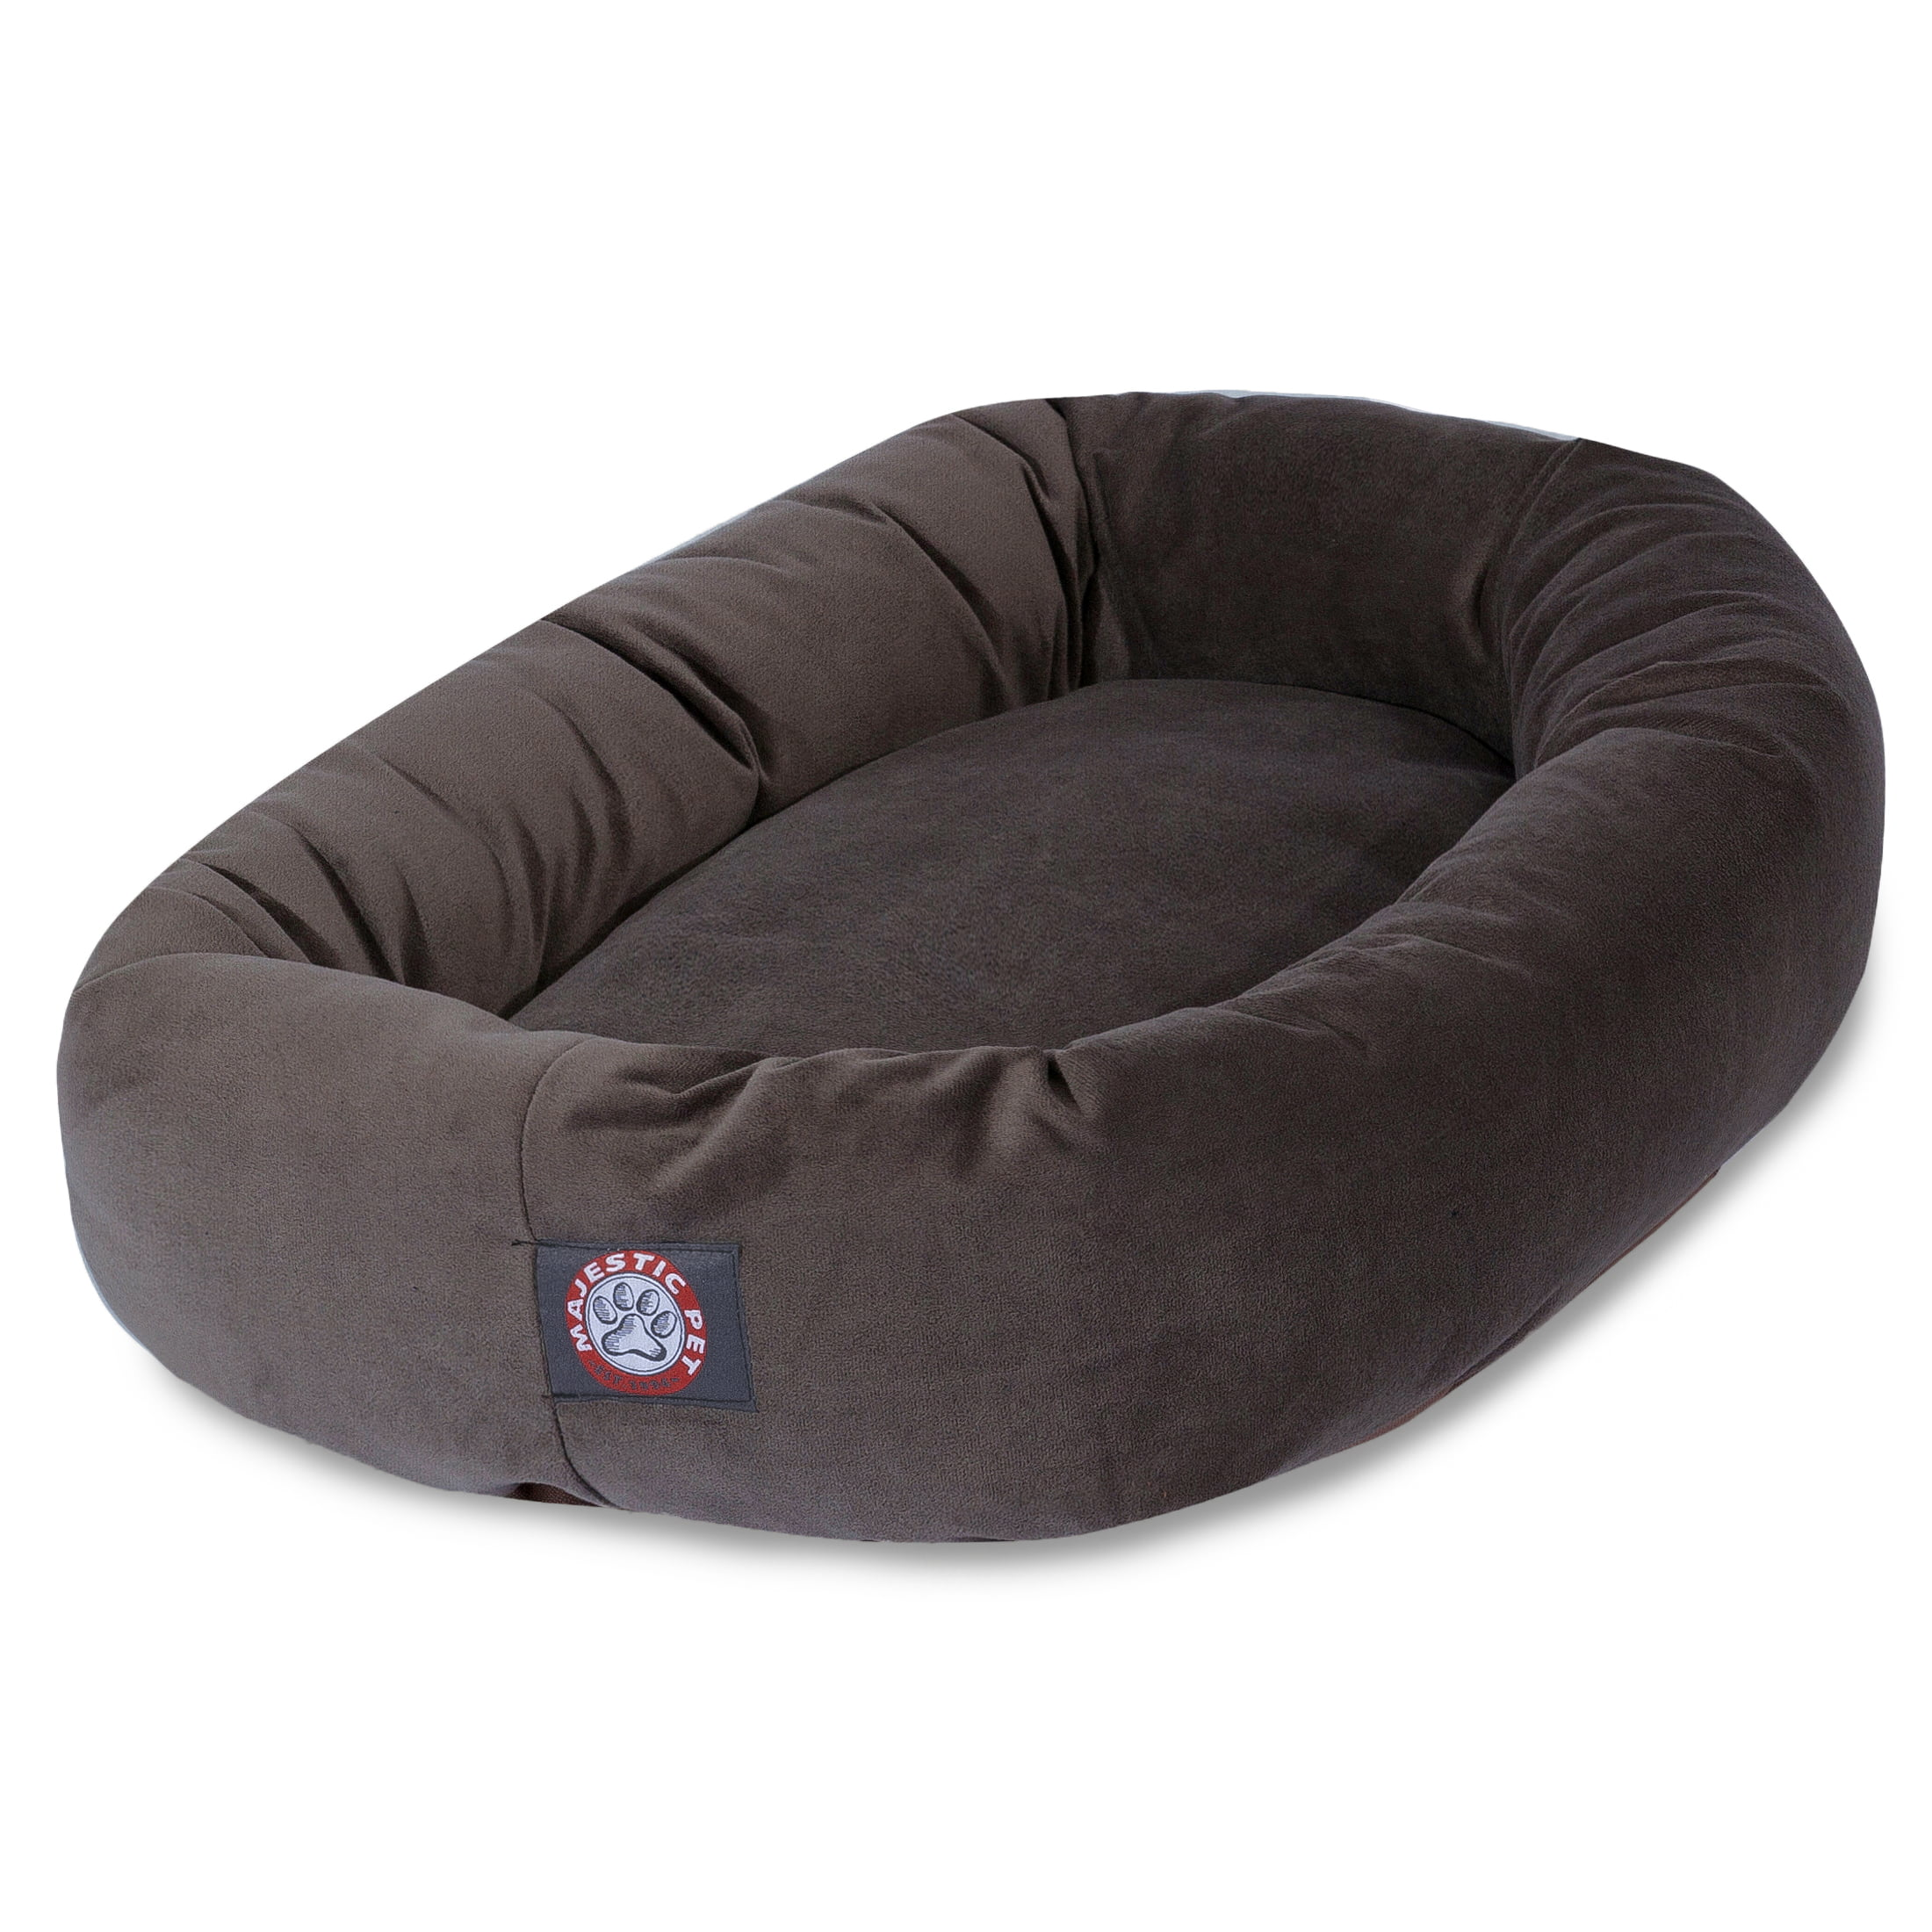 """Majestic Pet Suede Bagel Dog Bed Machine Washable Chocolate Large 40"""" x 29"""" x 9"""""""